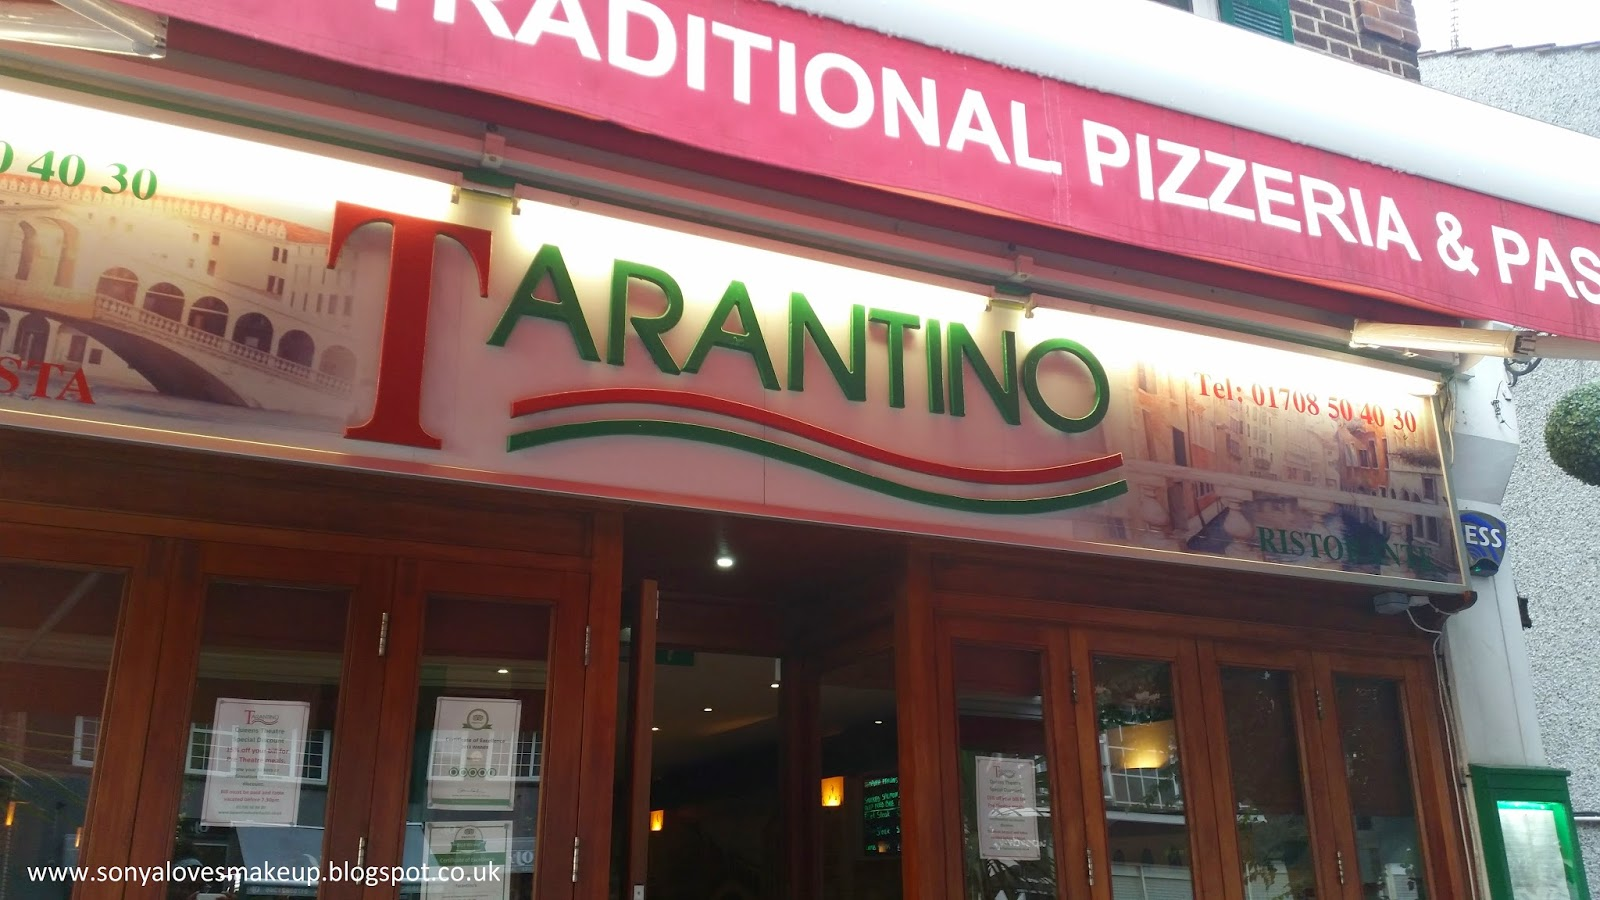 Restaurant review, Tarantino, Italian food, Hornchurch